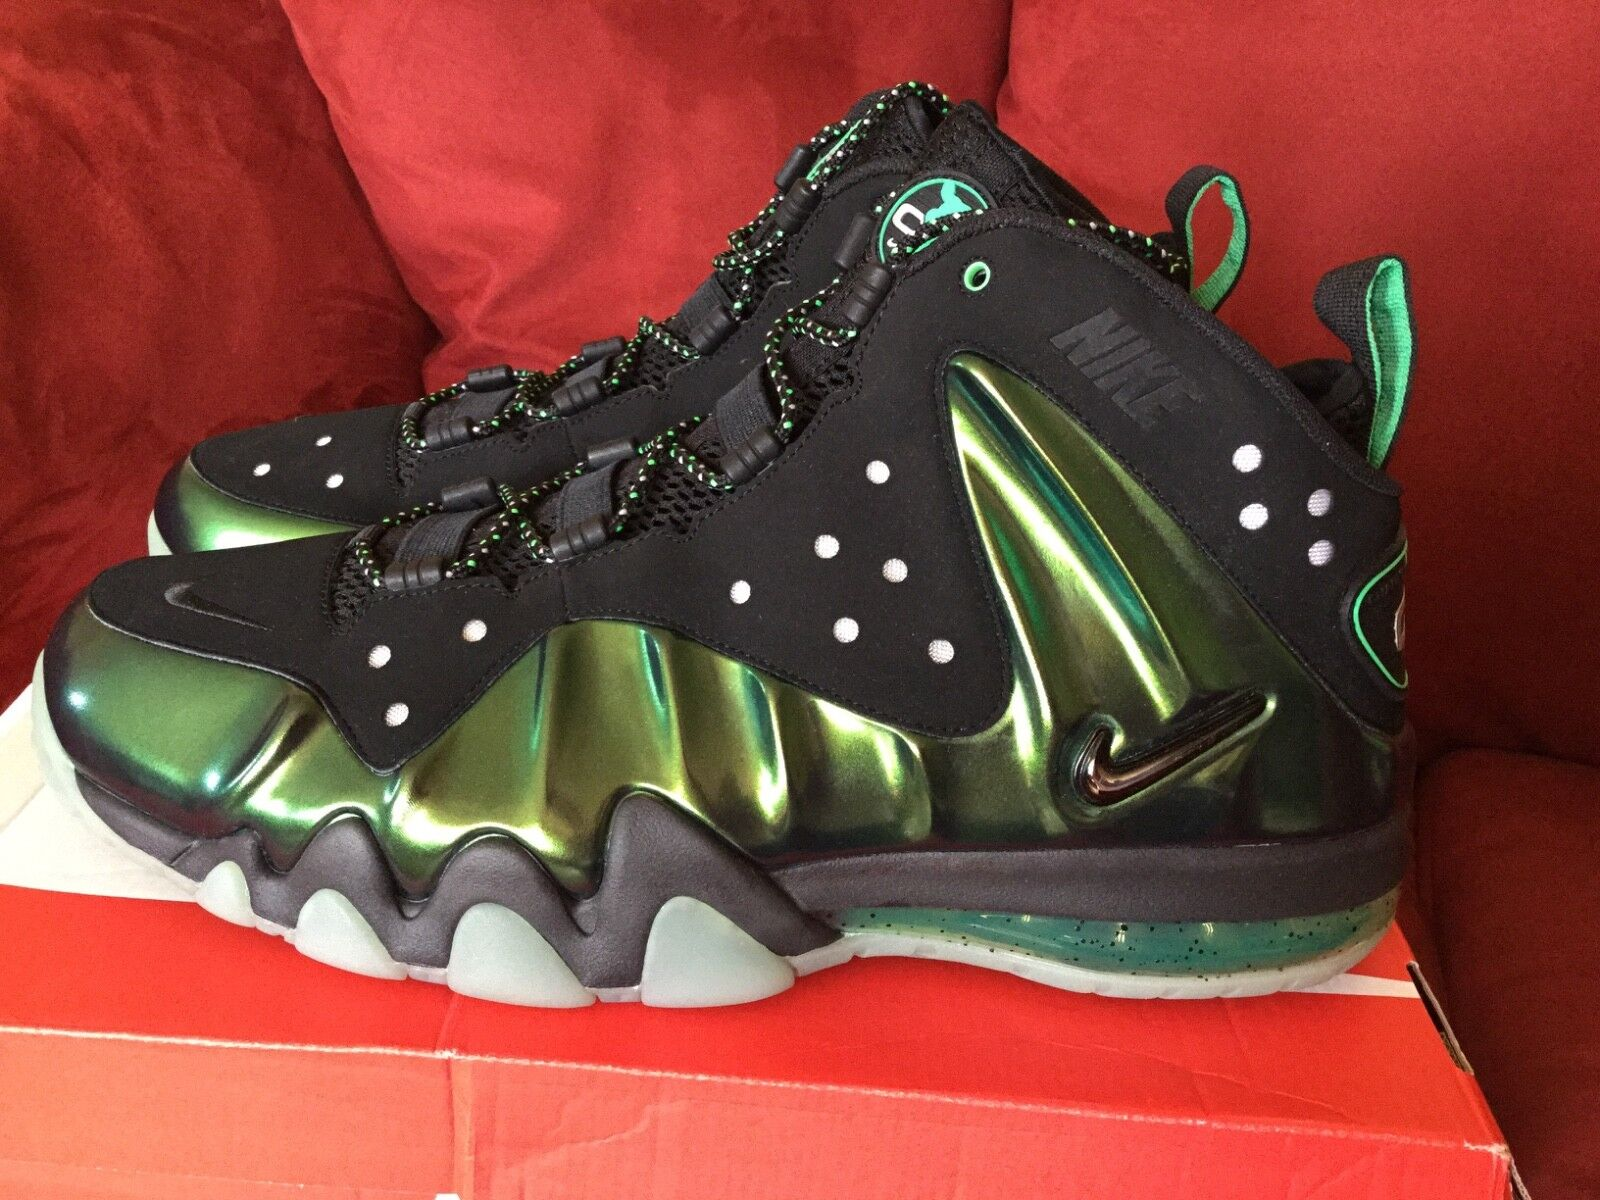 Brand New  Nike Barkley Posite Max Gamma Green Size 15  Never Worn  2013